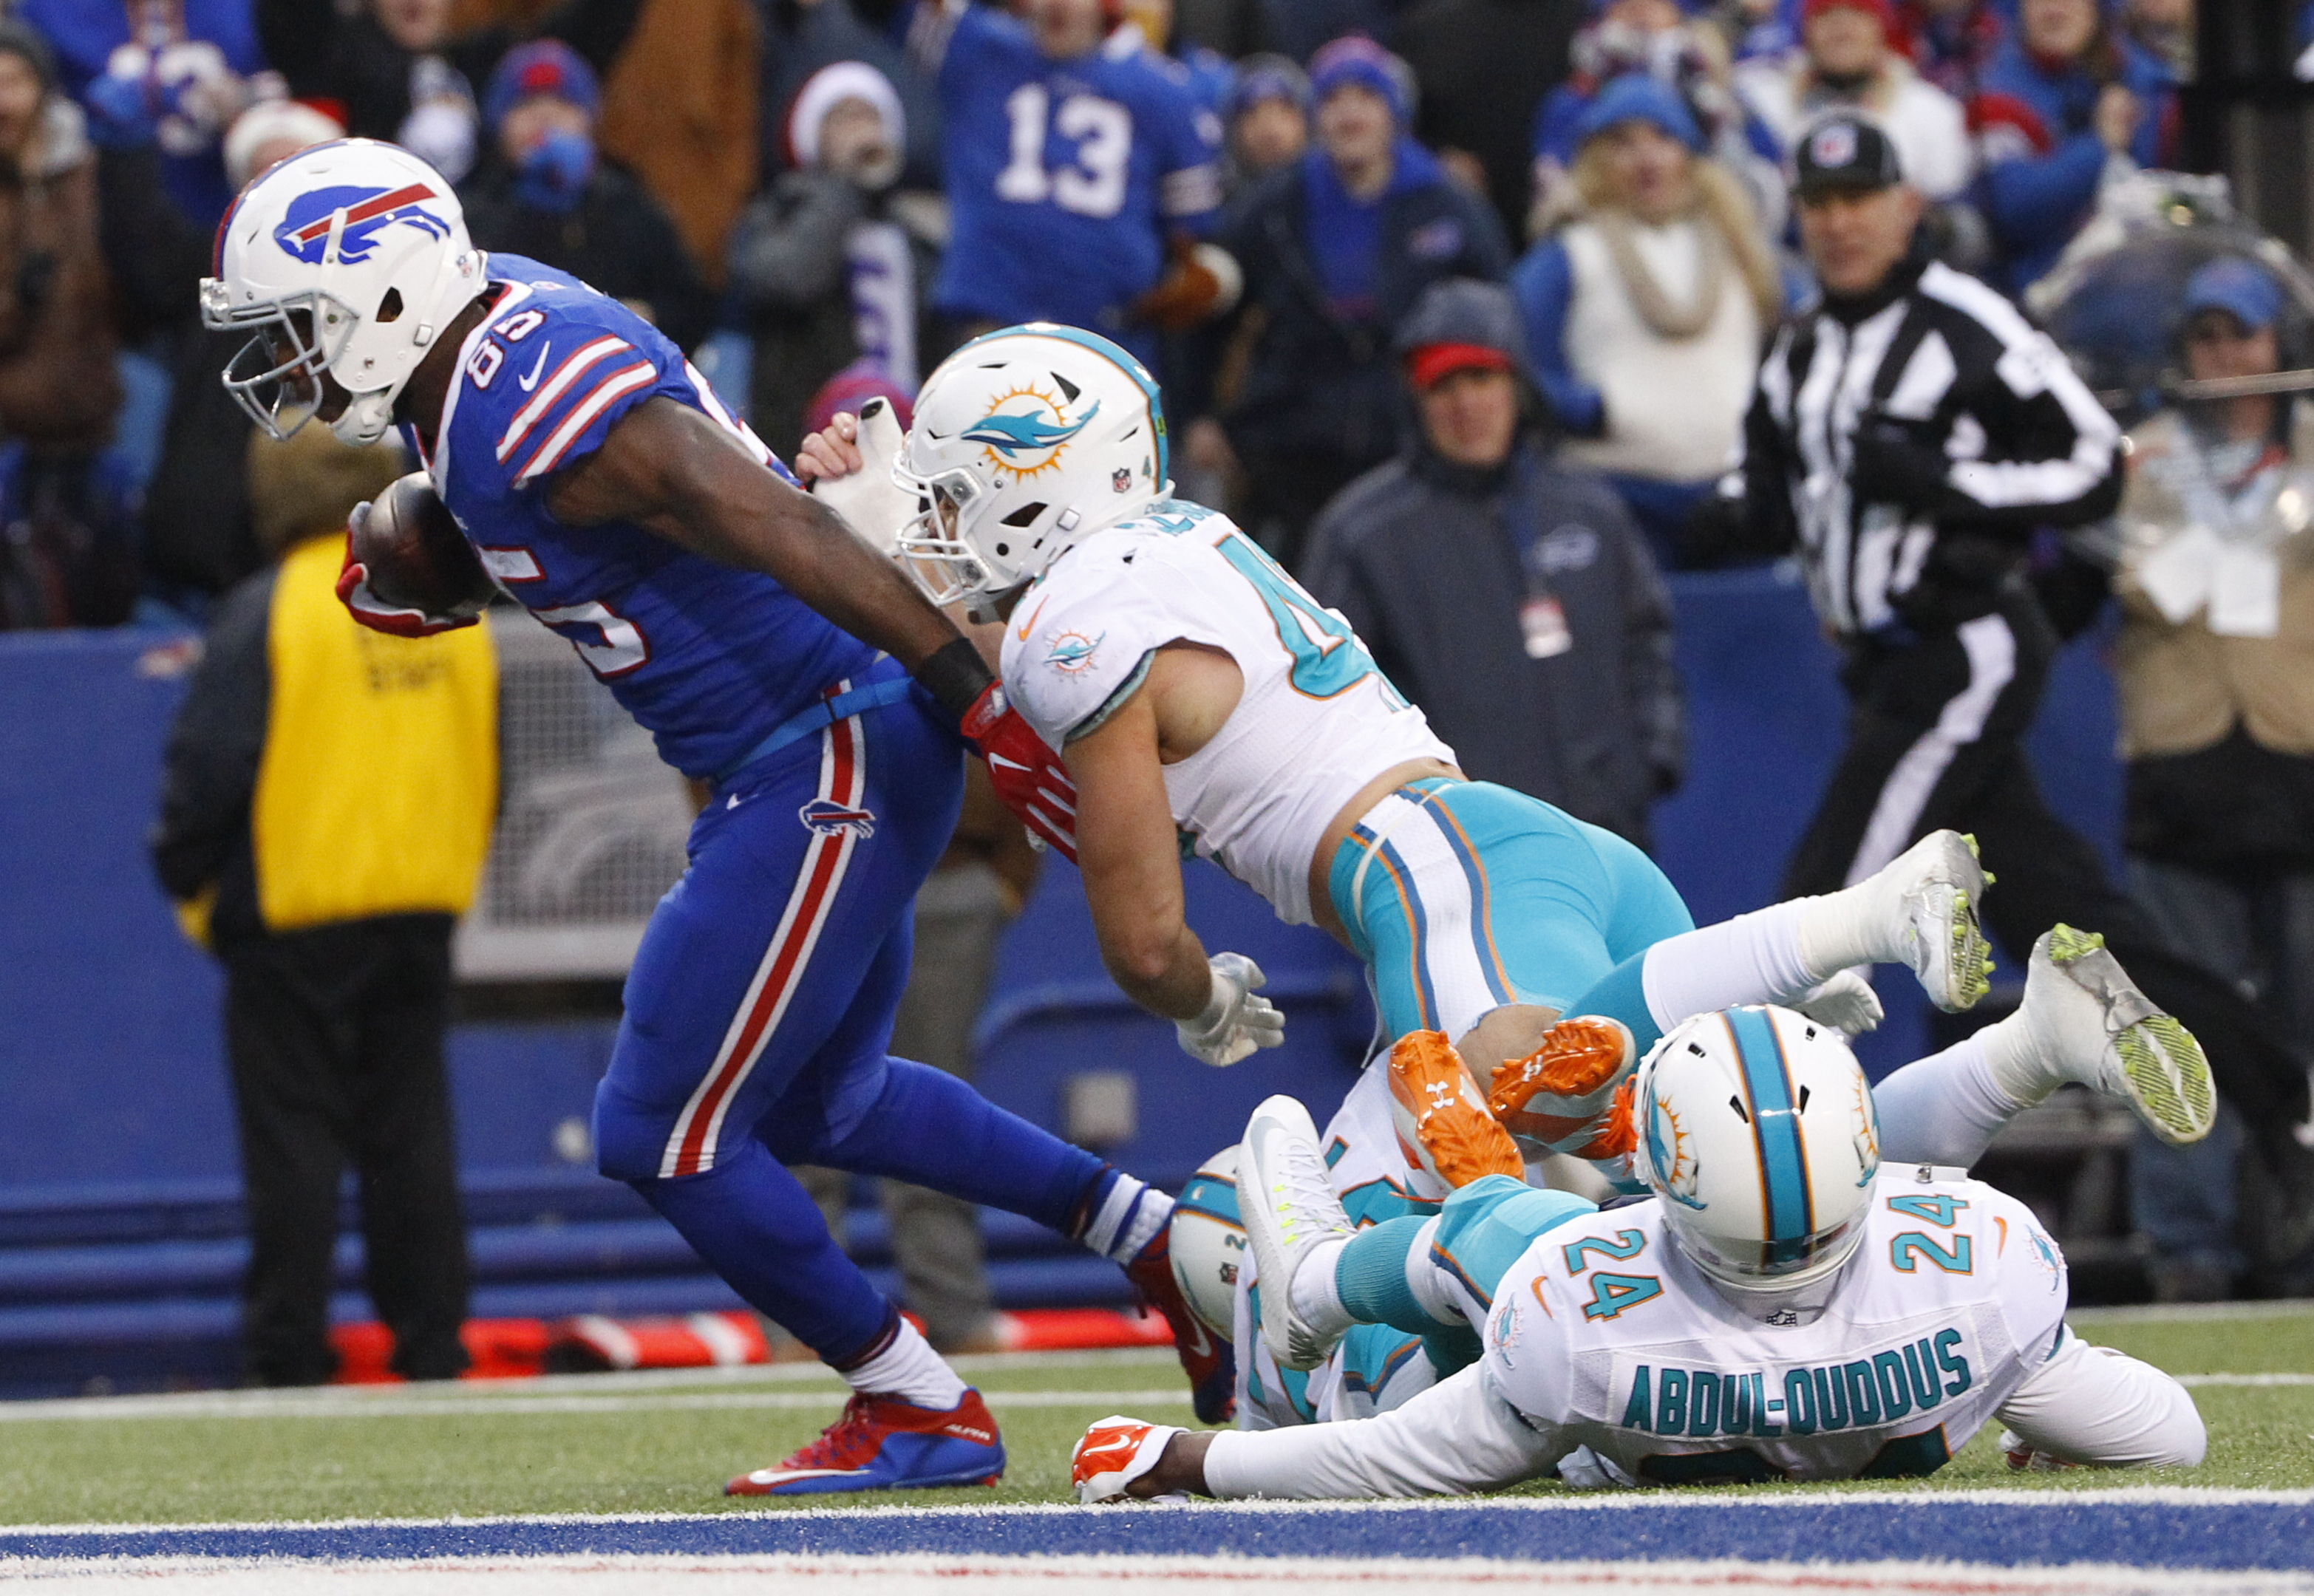 Buffalo Bills tight end Charles Clay (85) breaks a tackle by Miami Dolphins' Kiko Alonso (47) to score a touchdown as Isa Abdul-Quddus (24) watches during the second half of an NFL football game, Saturday, Dec. 24, 2016, in Orchard Park, N.Y. (AP Photo/Bi